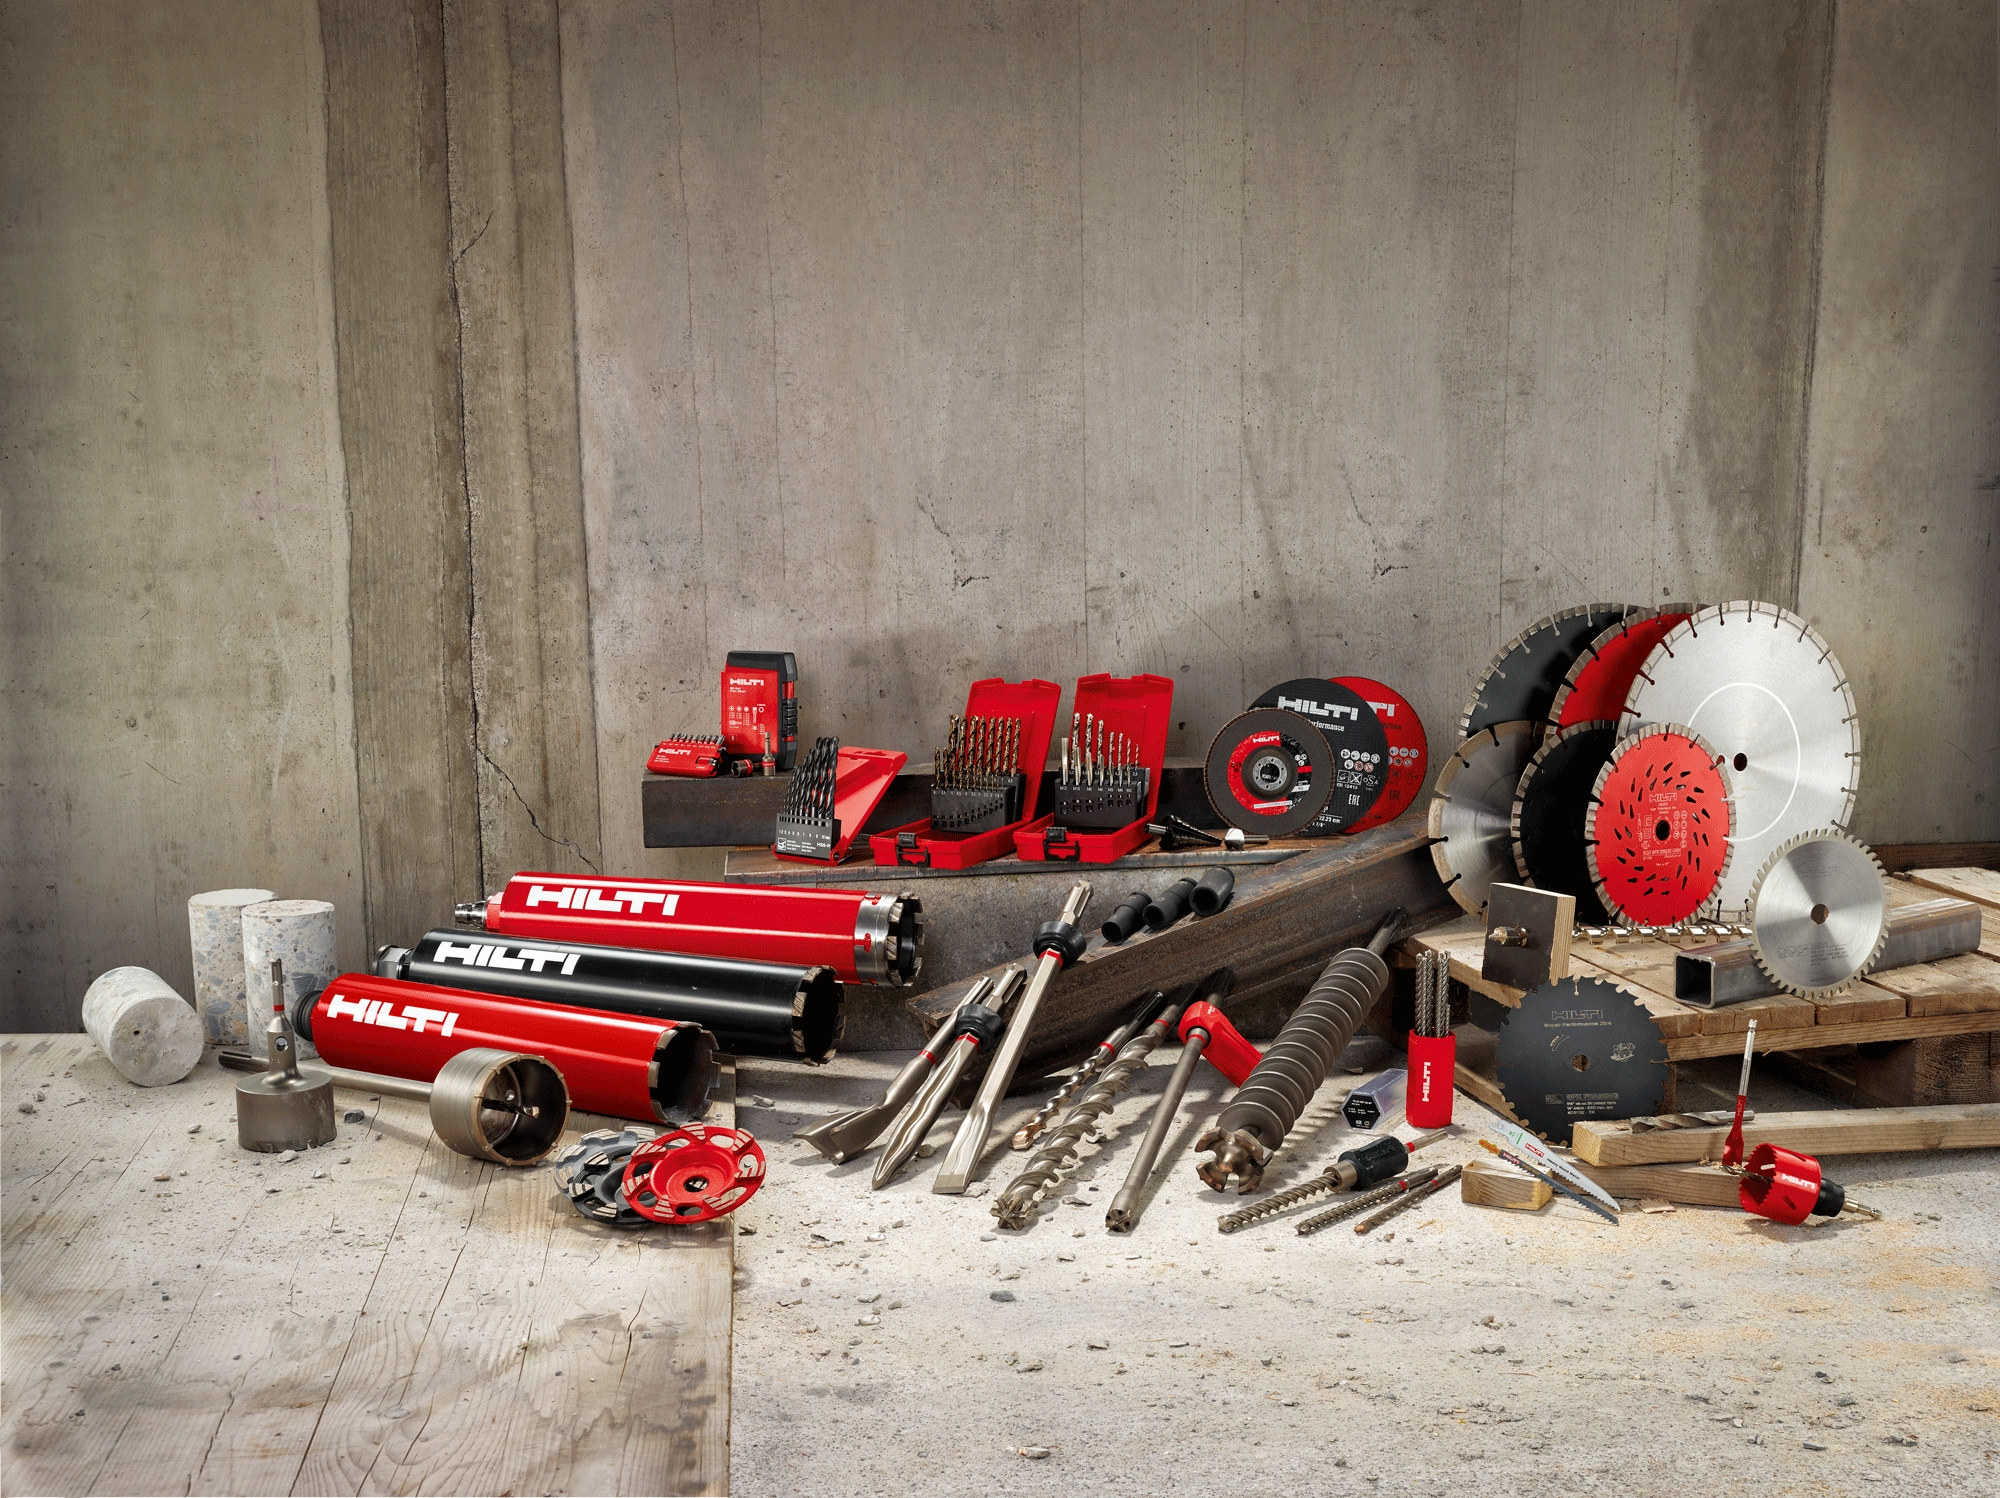 Hilti offers consumables customized for your application and budget